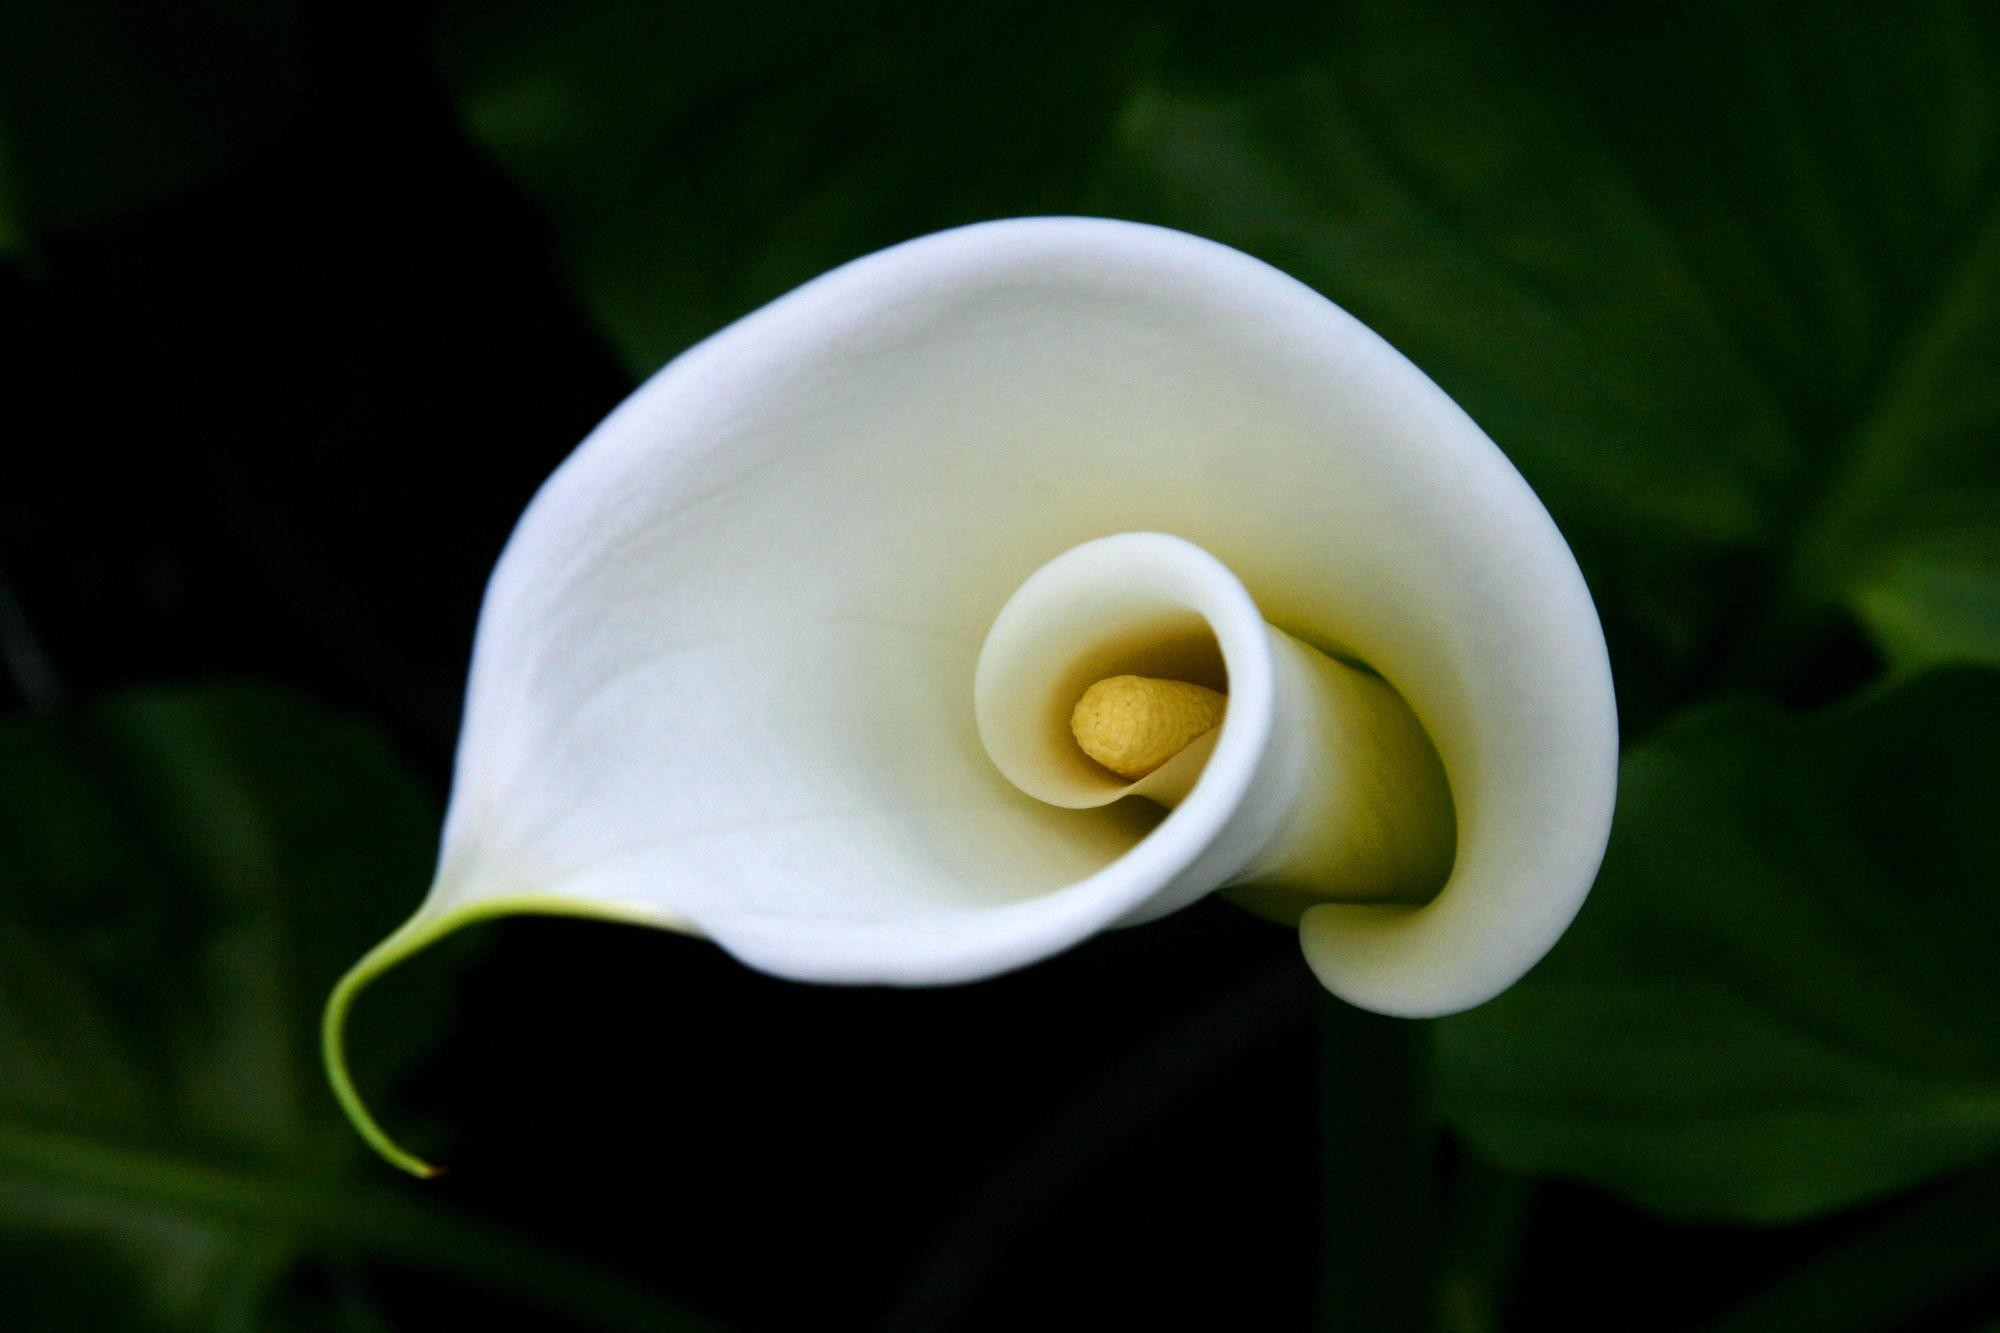 2000x1333 Calla Lily wallpapers for iphone